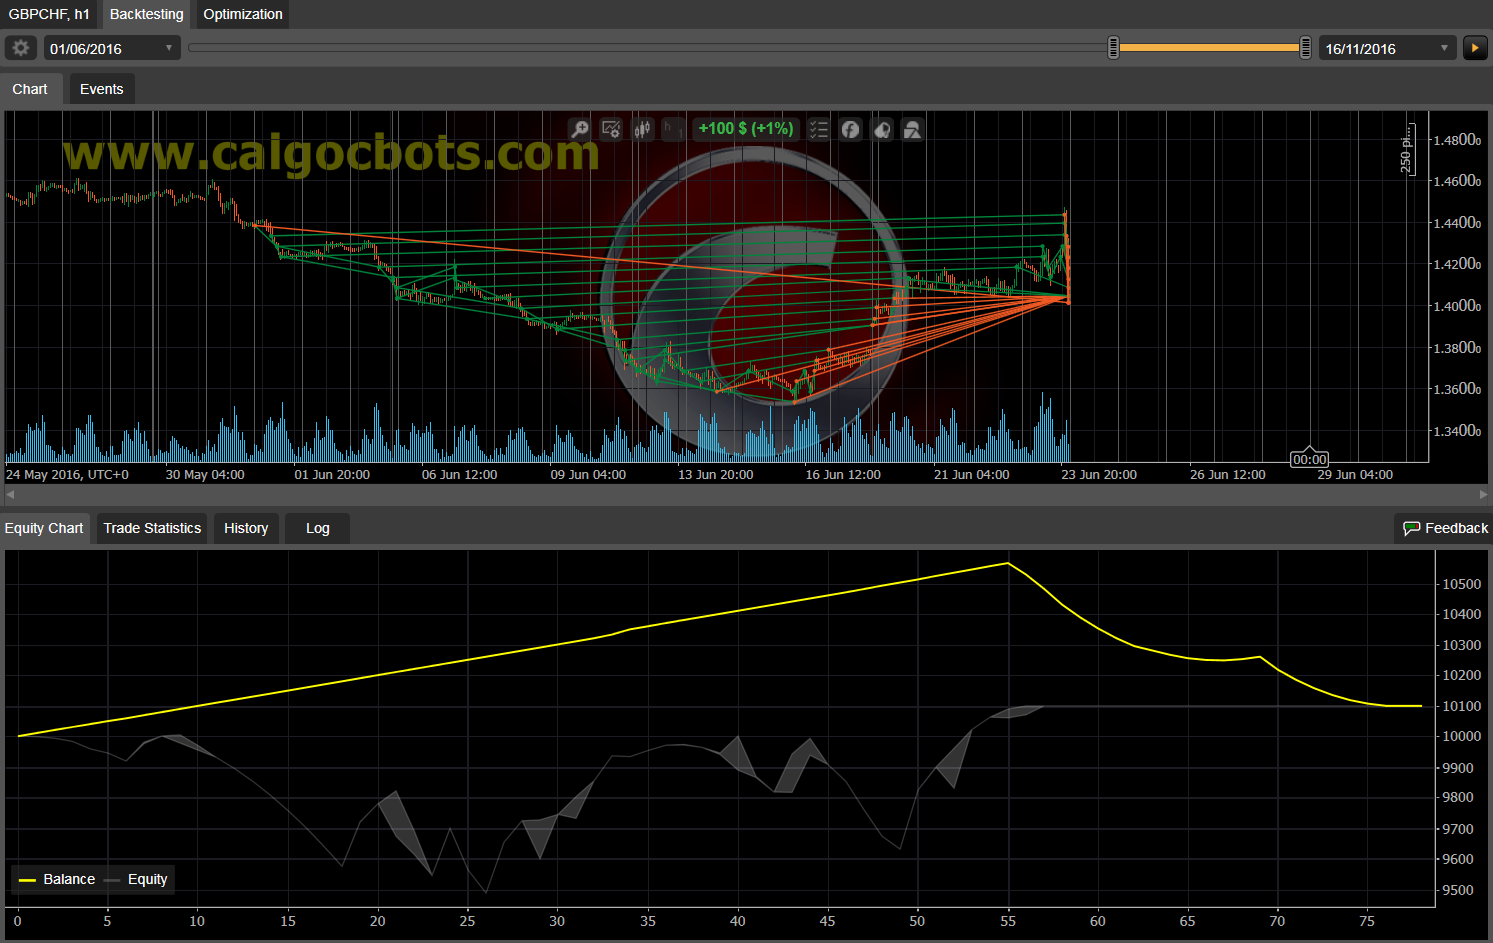 Dual Grid Hedge GBP CHF 1h cAlgo cBots cTrader 100 50 100 - 11 a